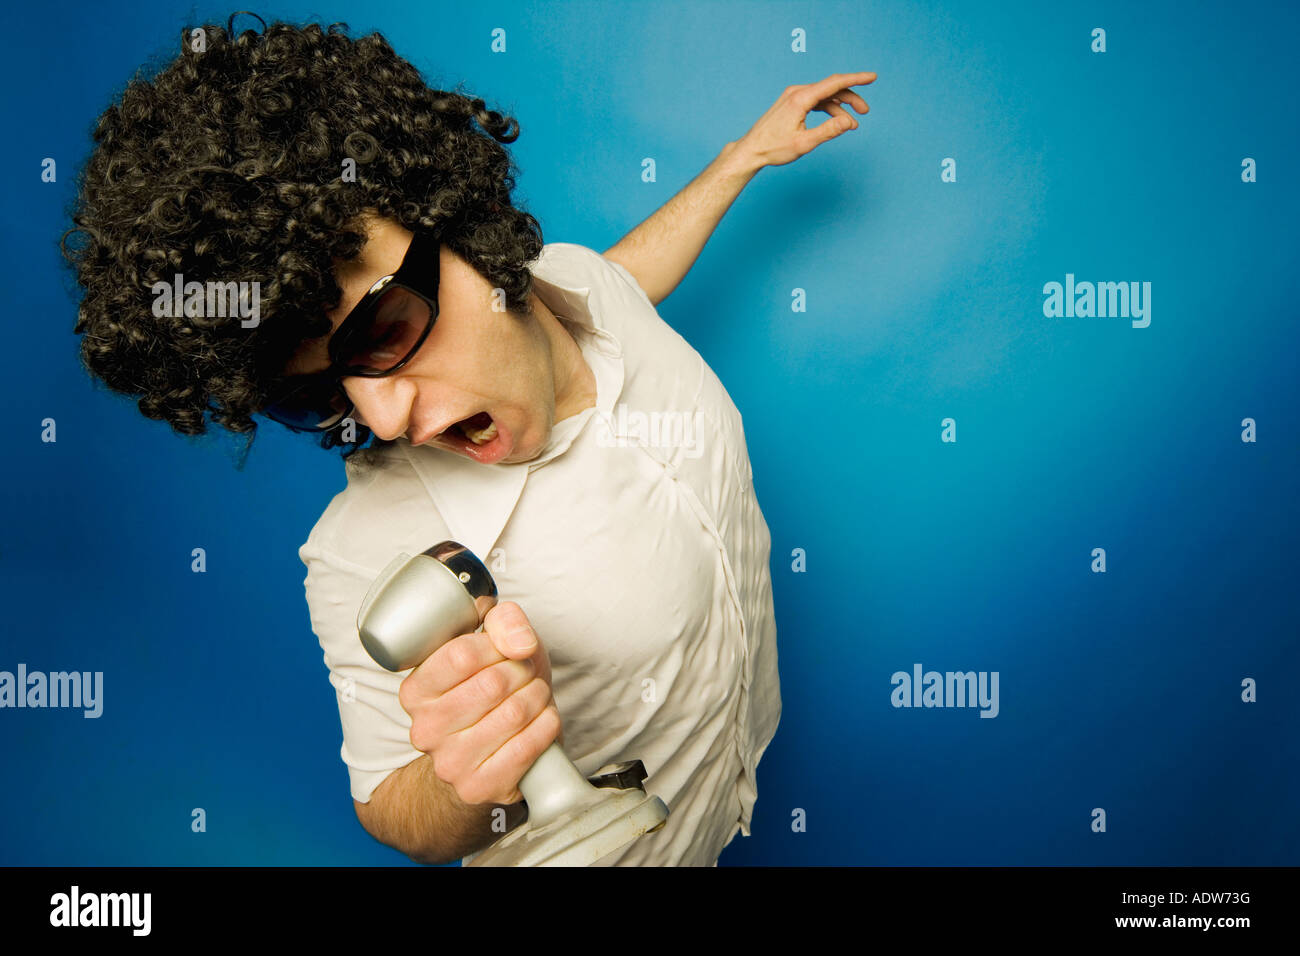 Impersonation - Stock Image